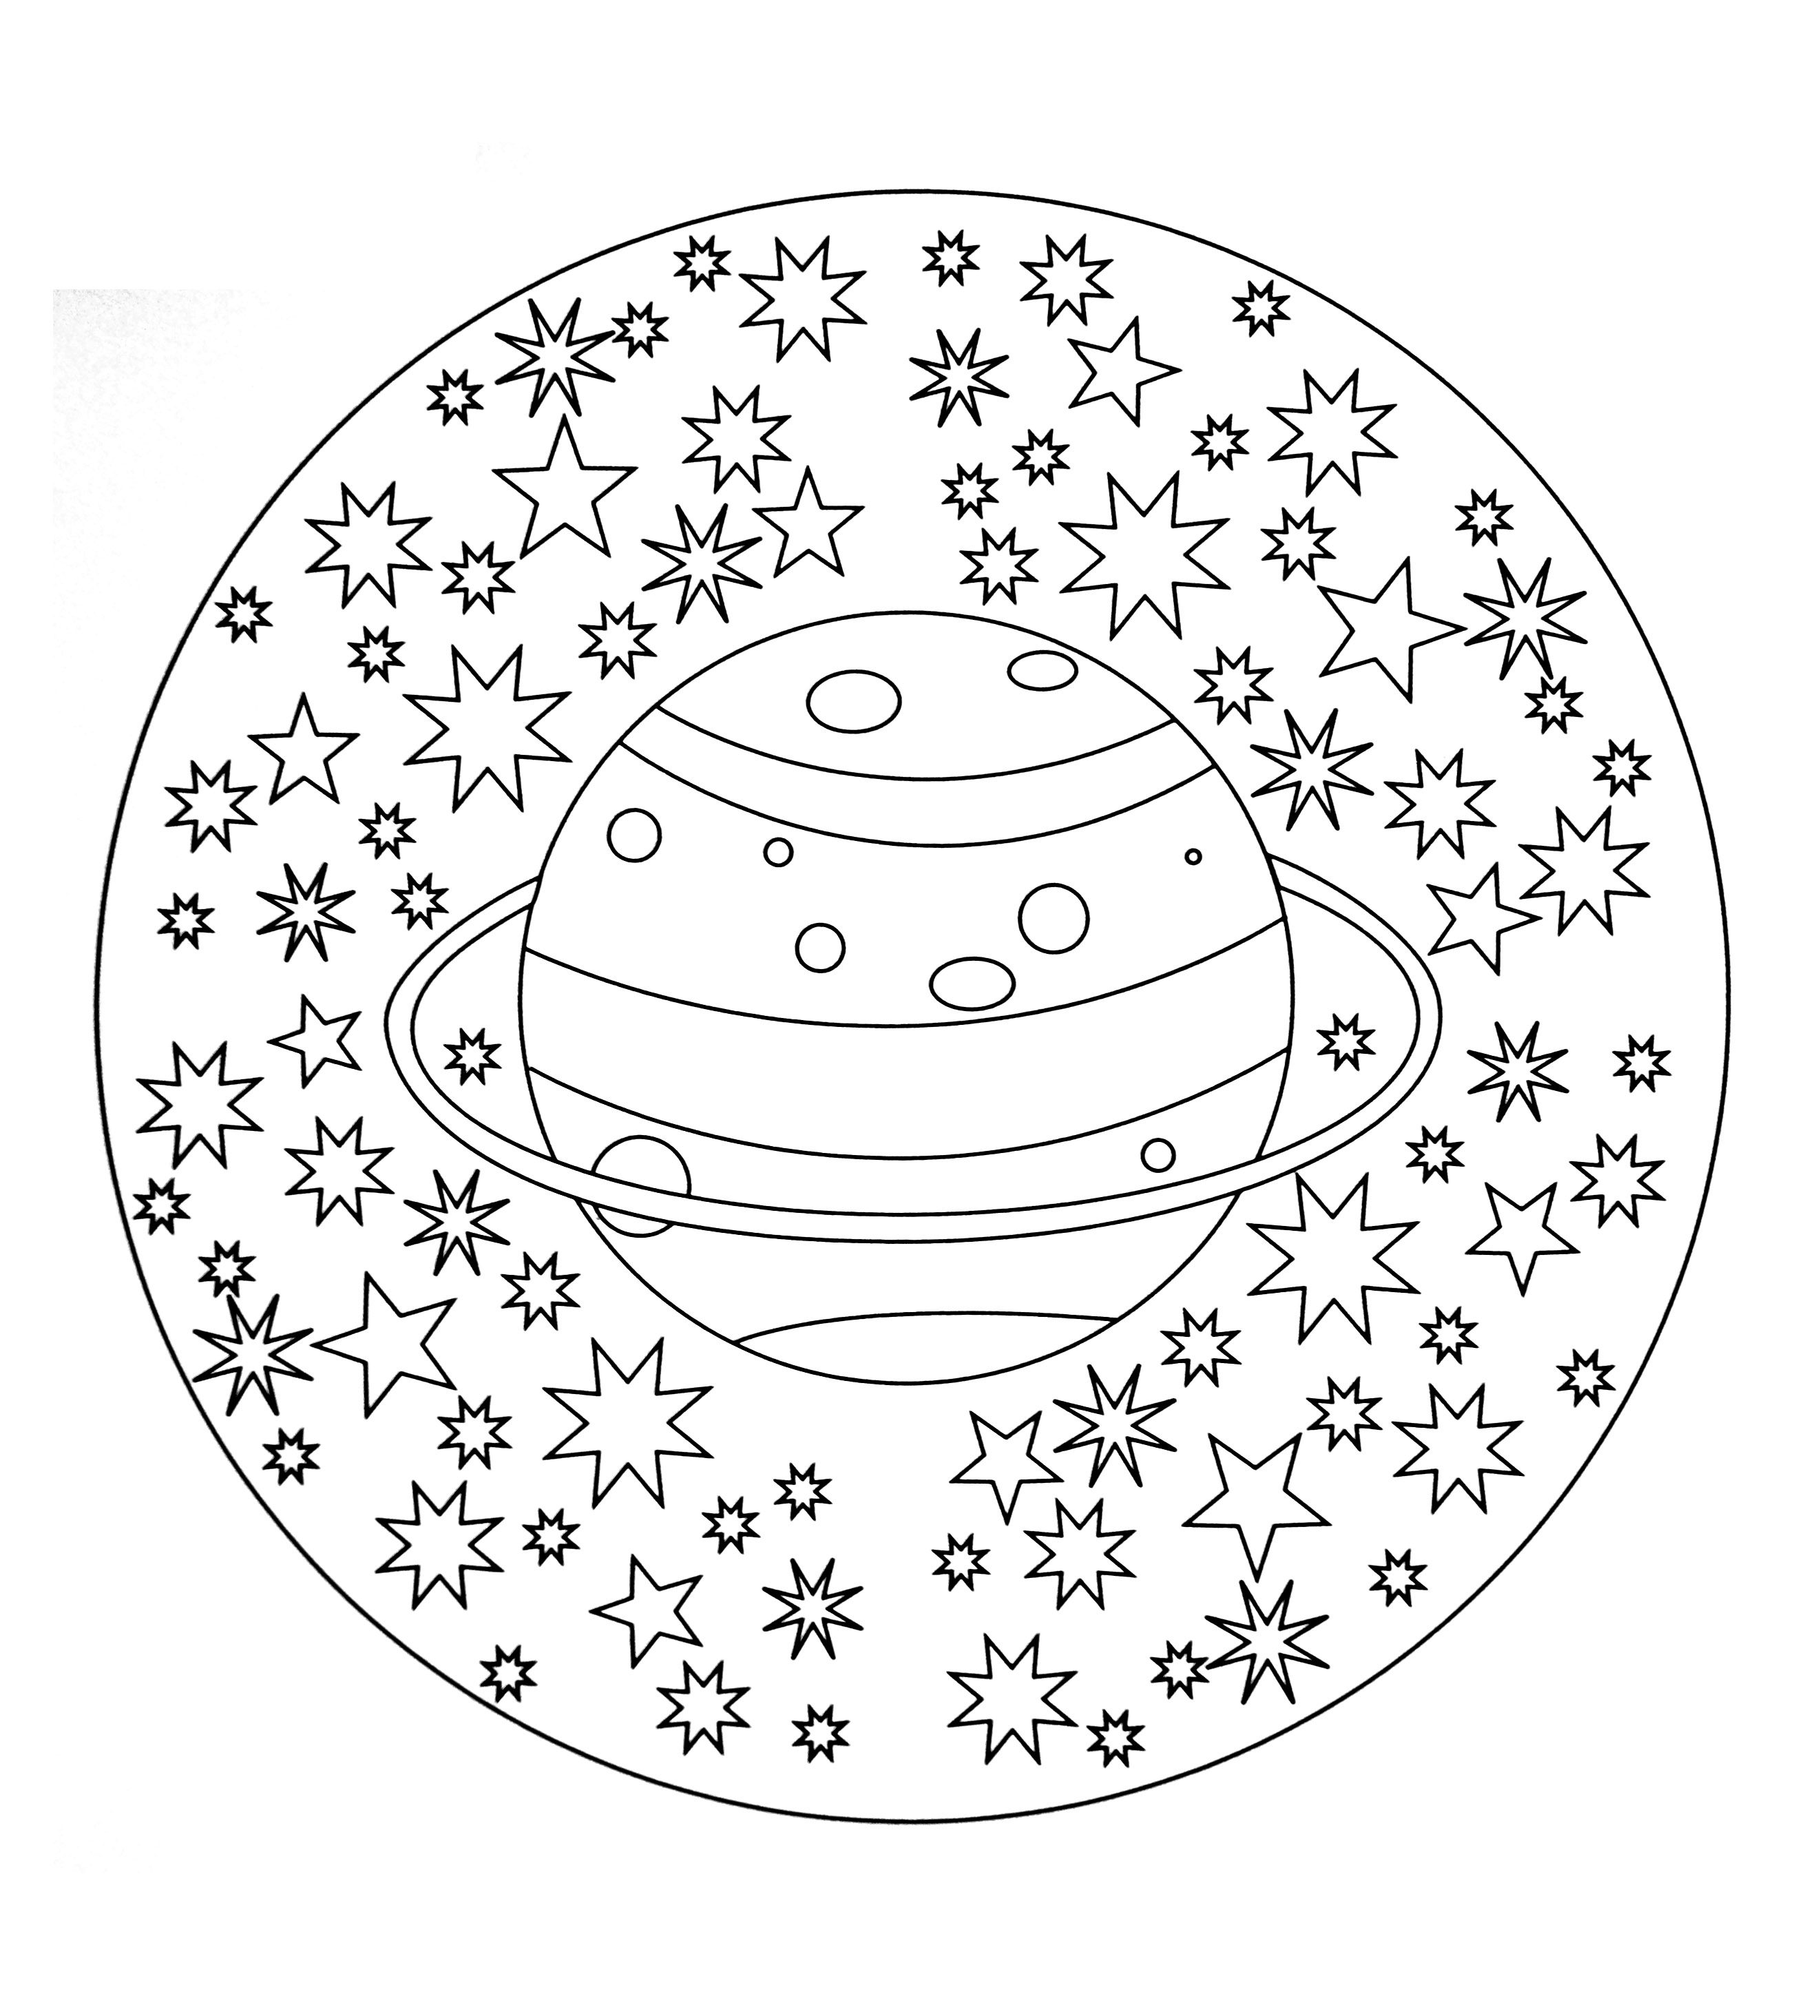 Simple mandala 19 - M&alas Coloring pages for kids to print & color